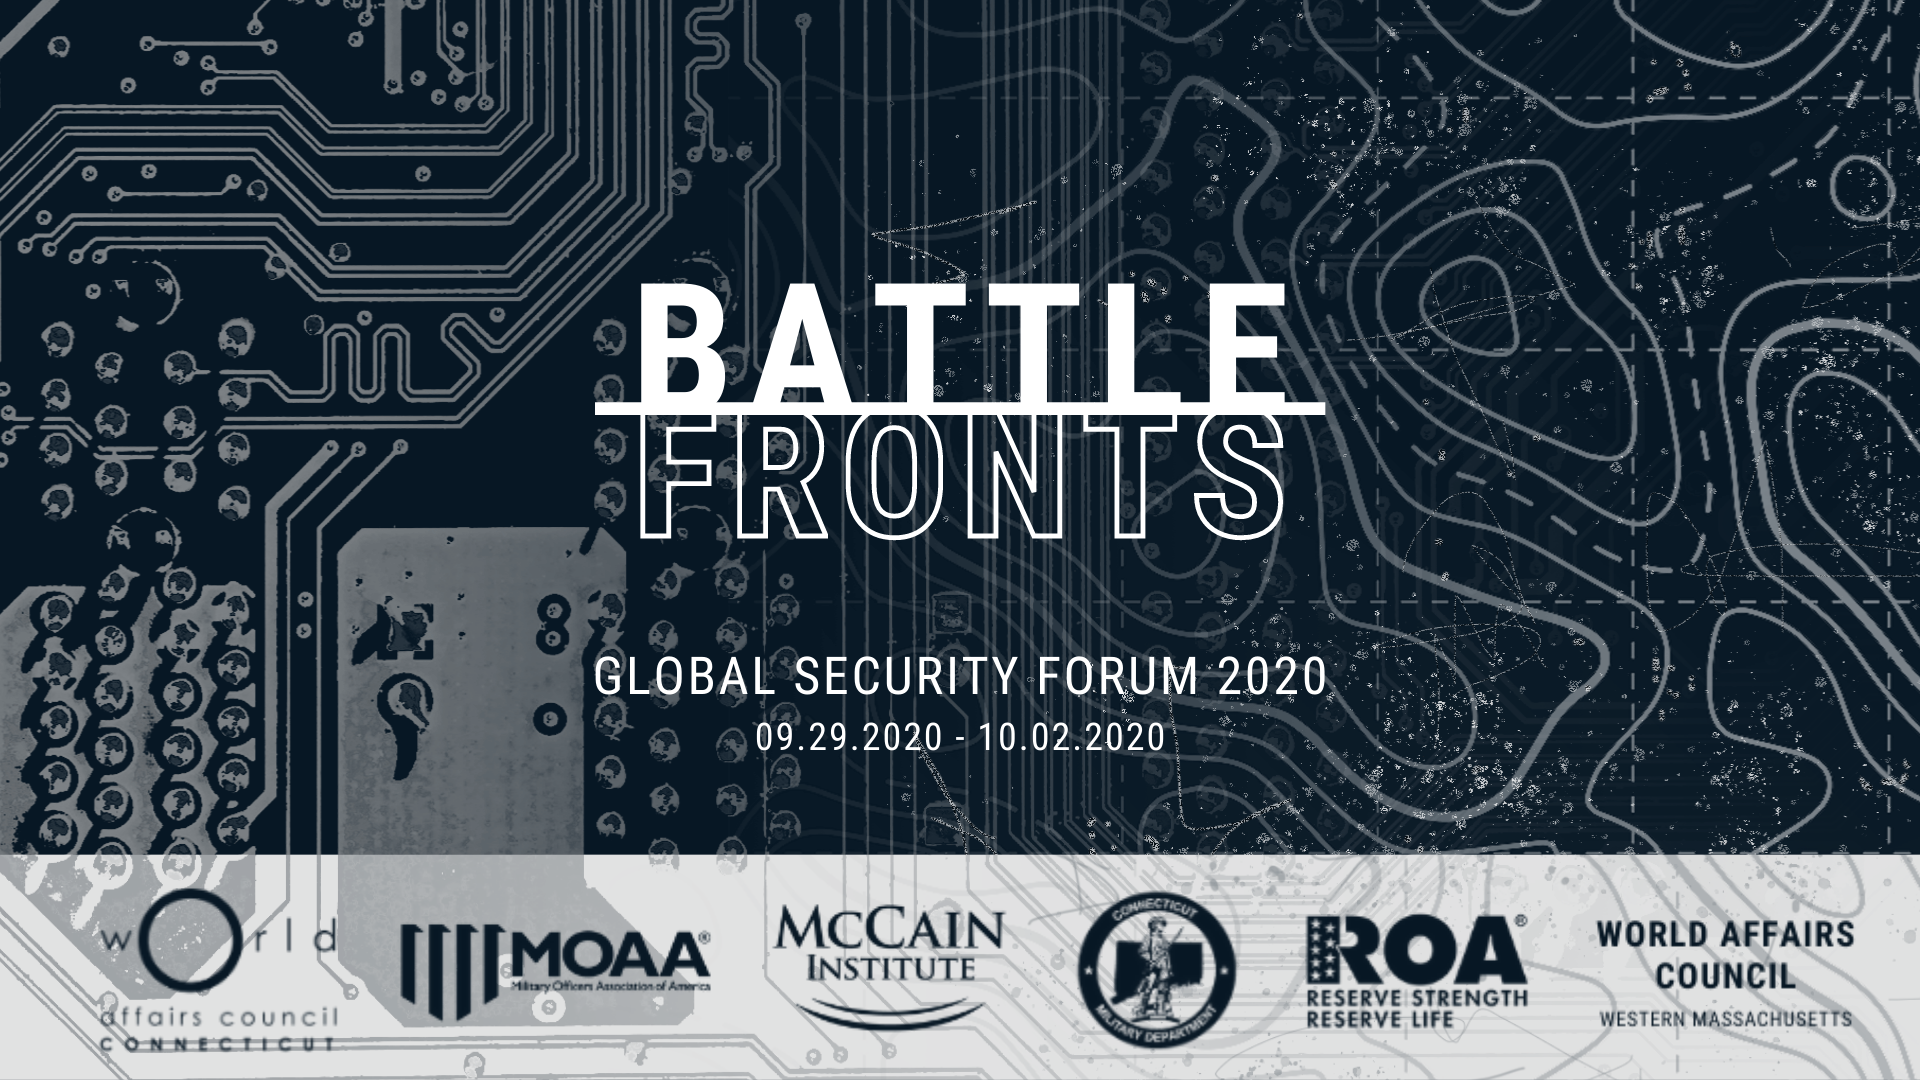 Global Security Forum 2020 Battlefronts